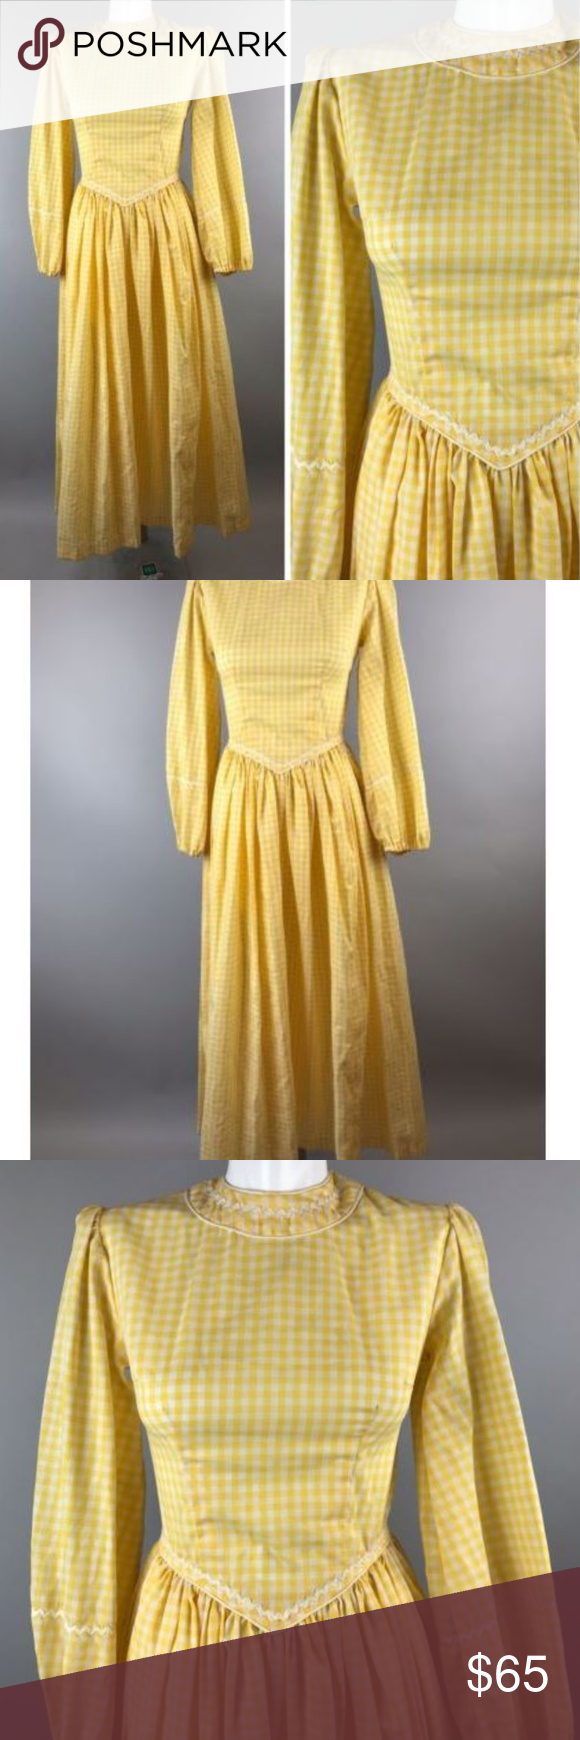 Vtg s yellow gingham check dress basque waist in my posh